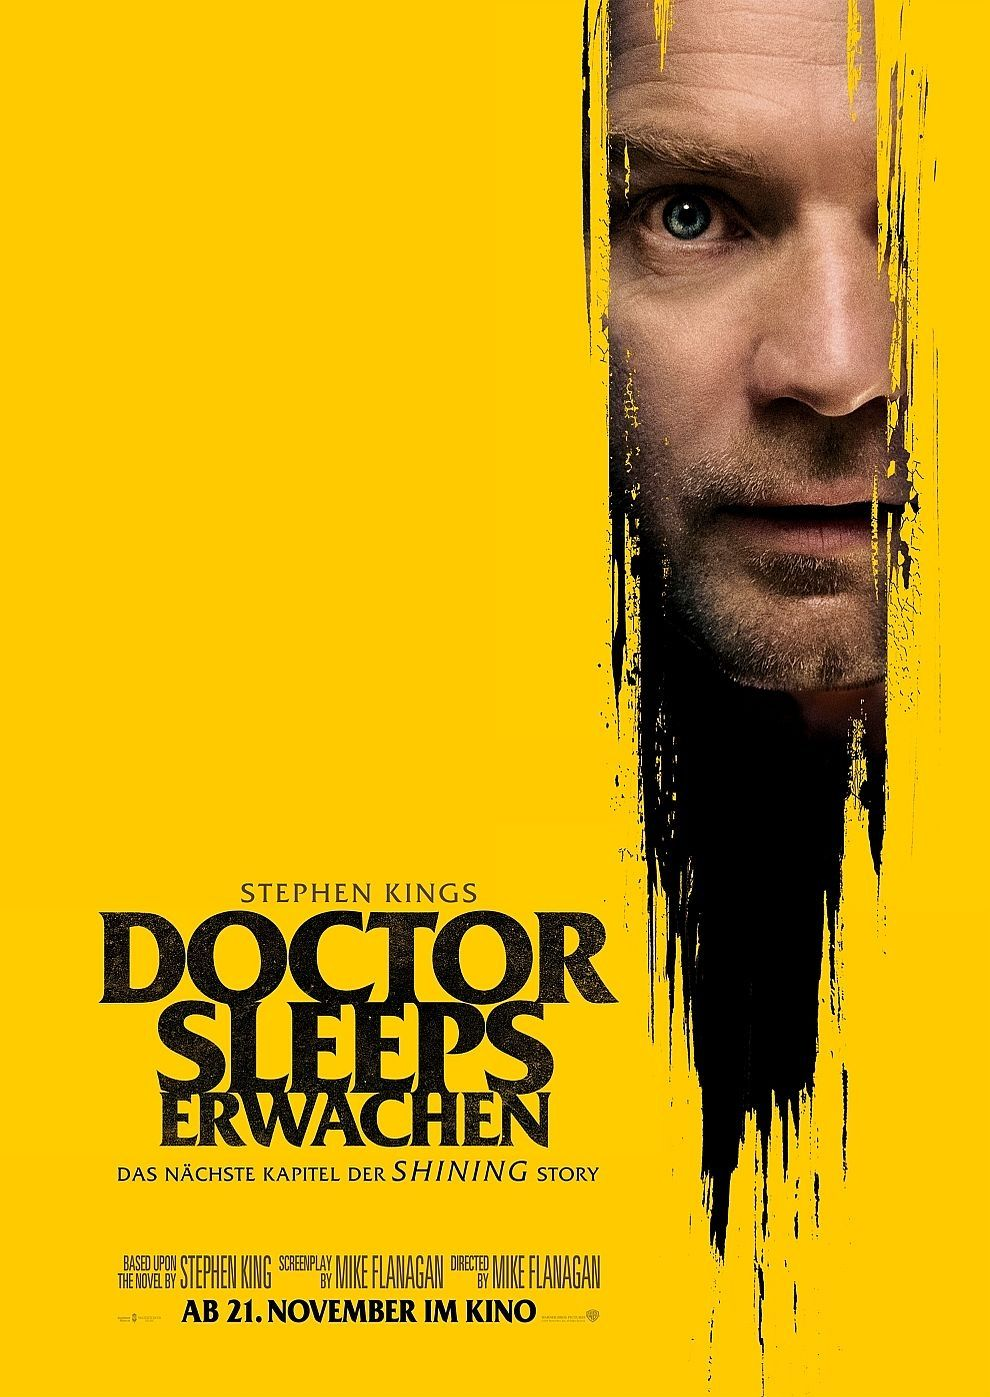 Plakat des Films: Stephen Kings Doctor Sleeps Erwachen